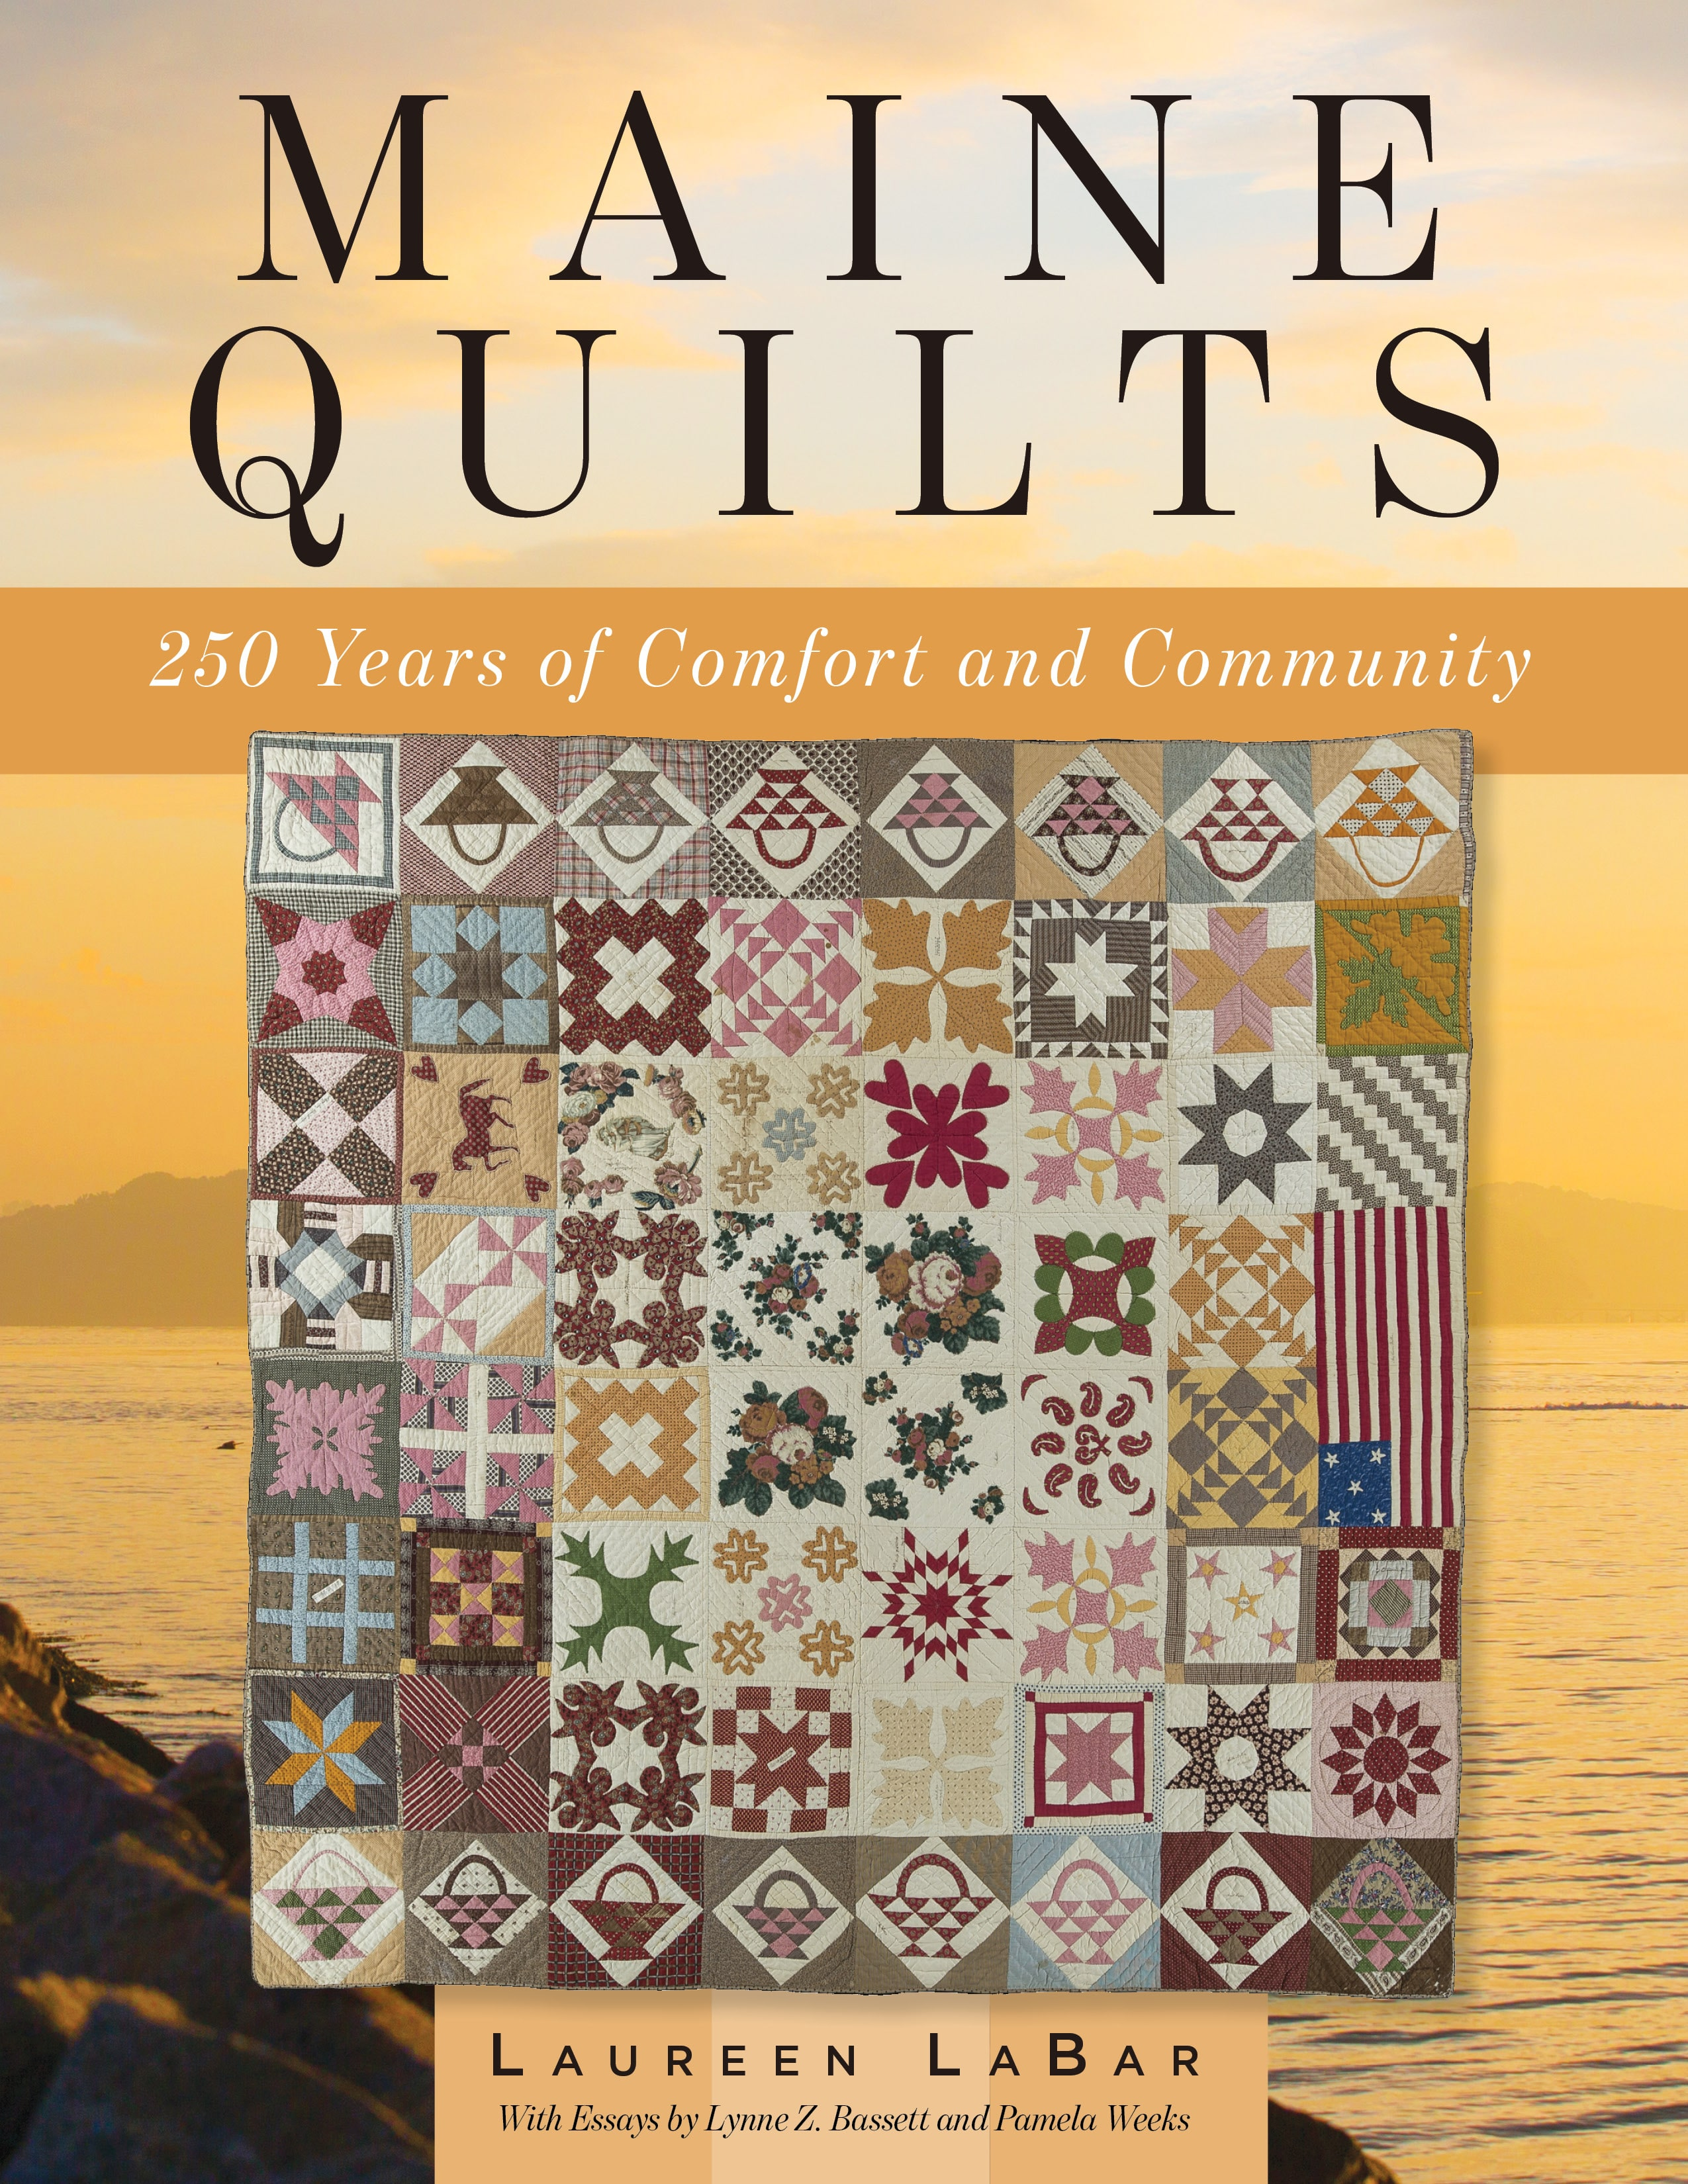 """Book cover for """"Maine Quilts: 250 Years of Comfort and Community by Laurie LaBar. Shows a colorful quilt against a background coastal scene."""